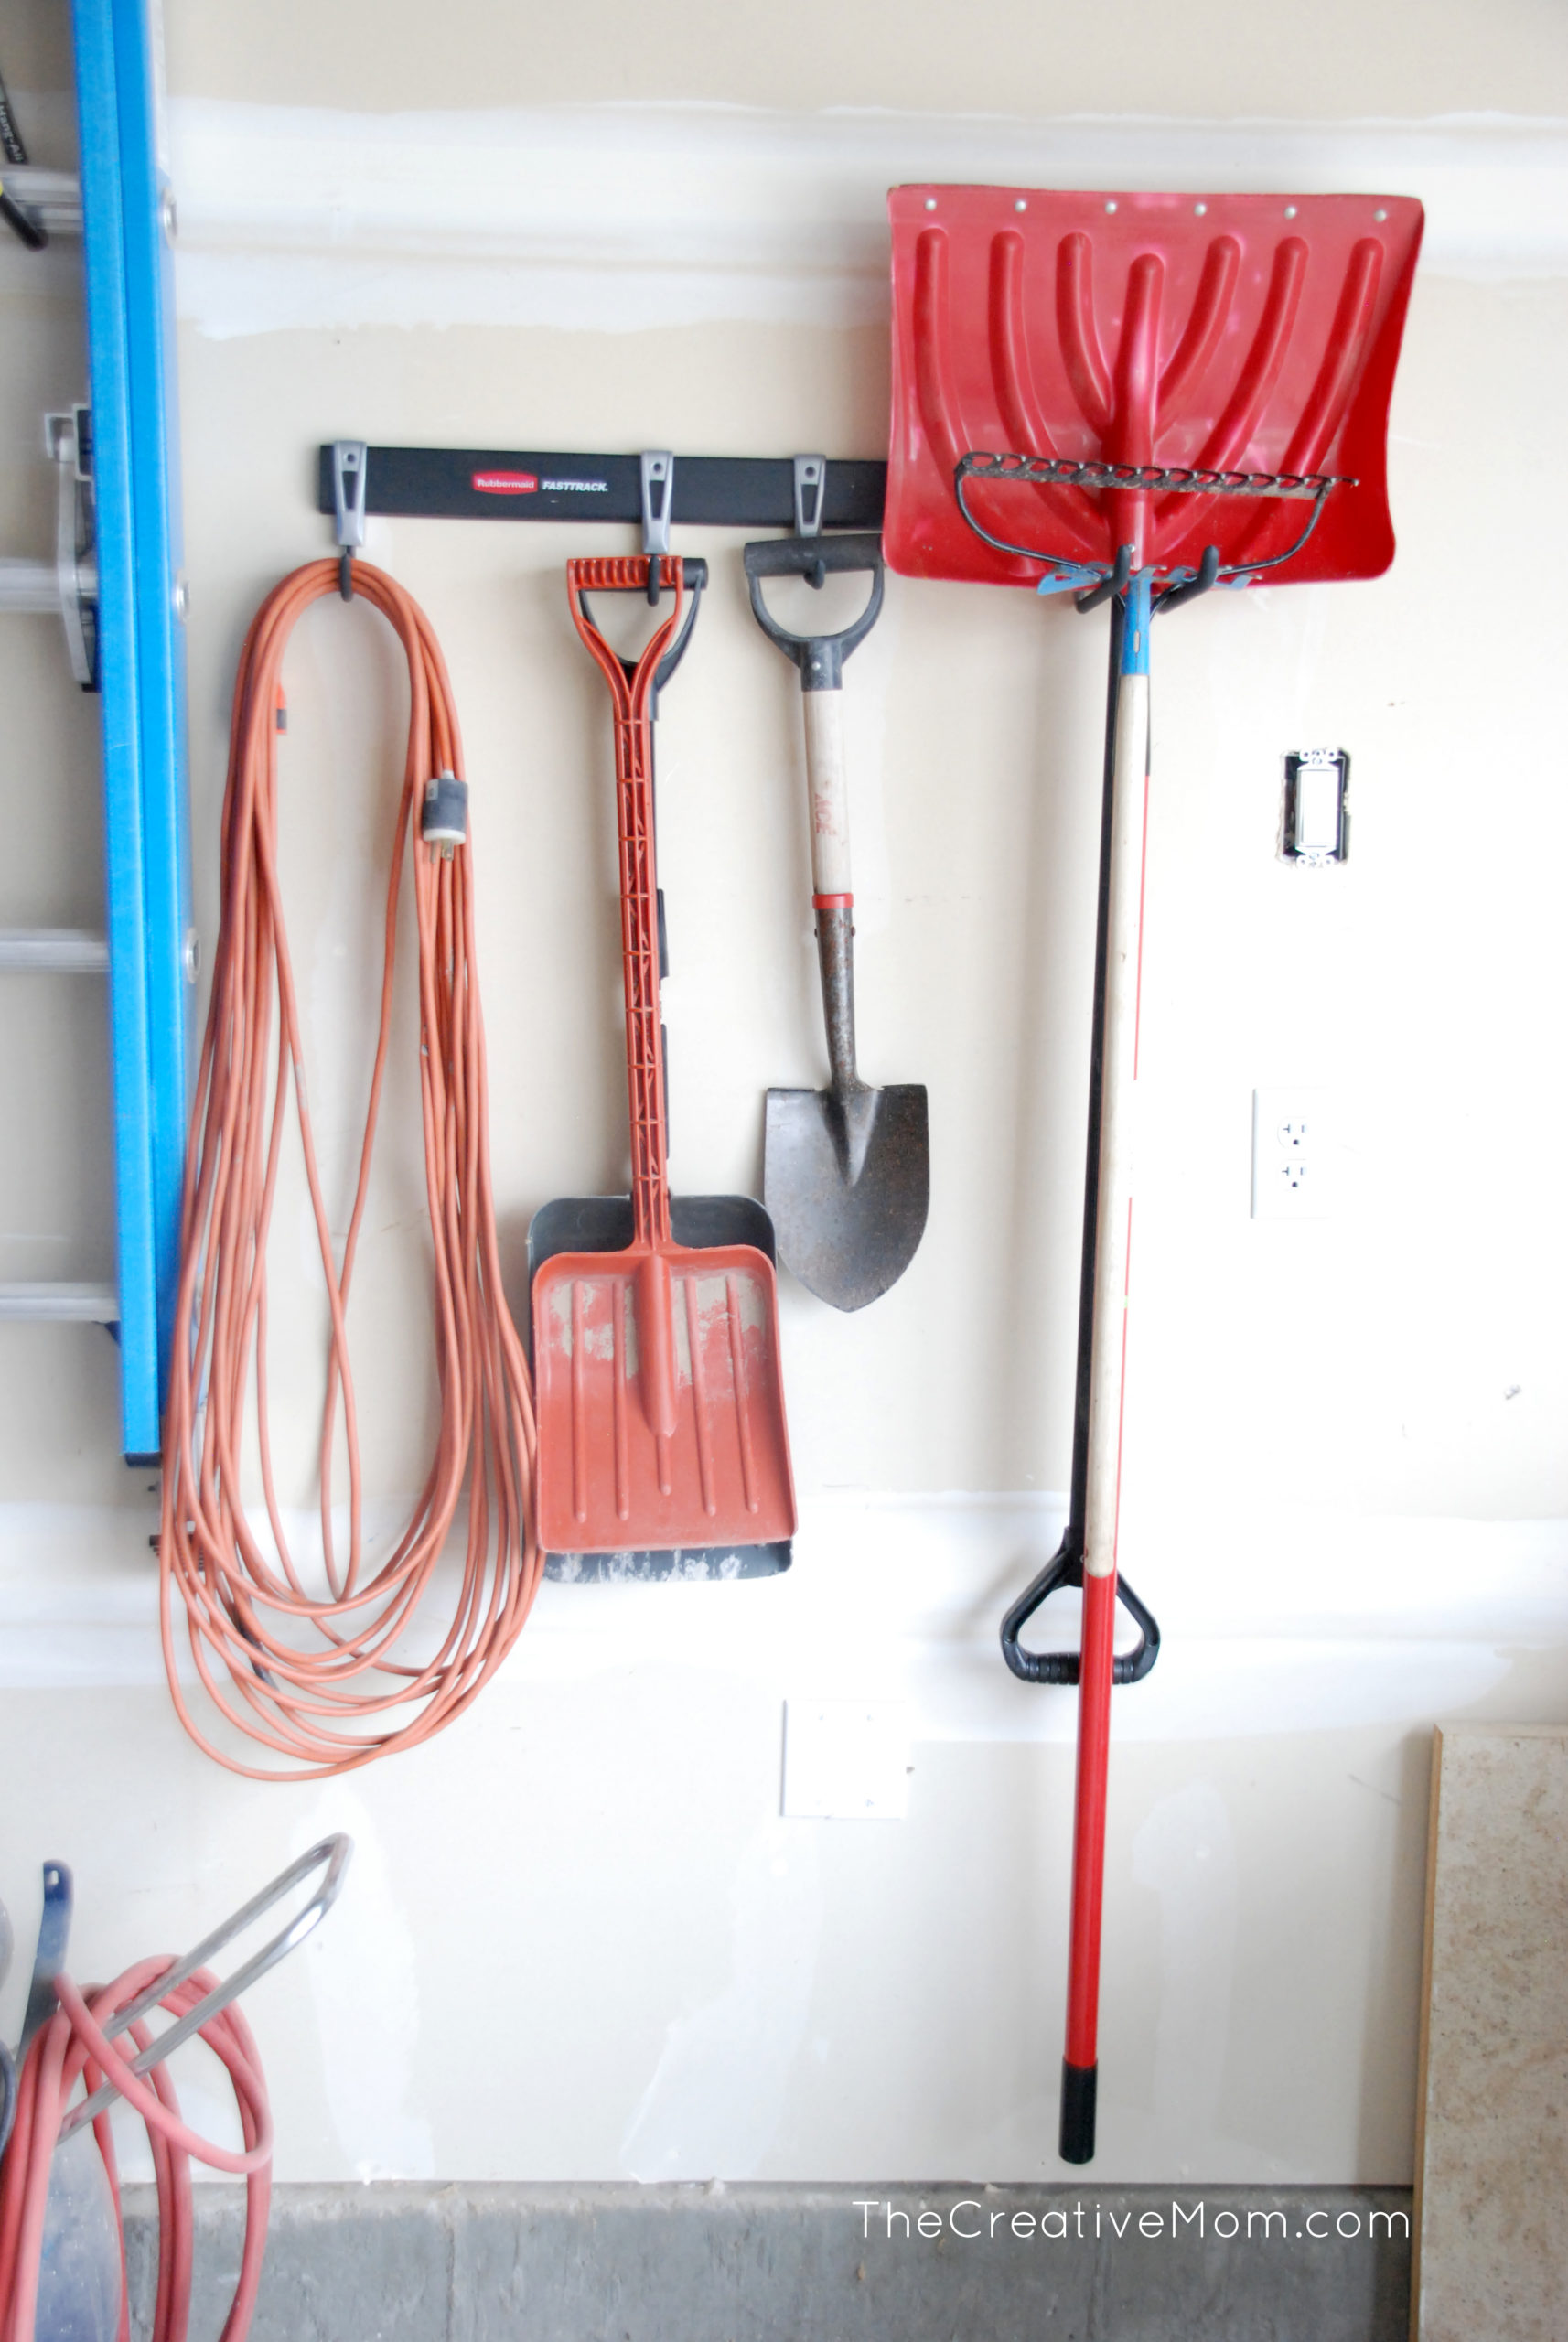 5 Quick Tips to Organize Your Garage